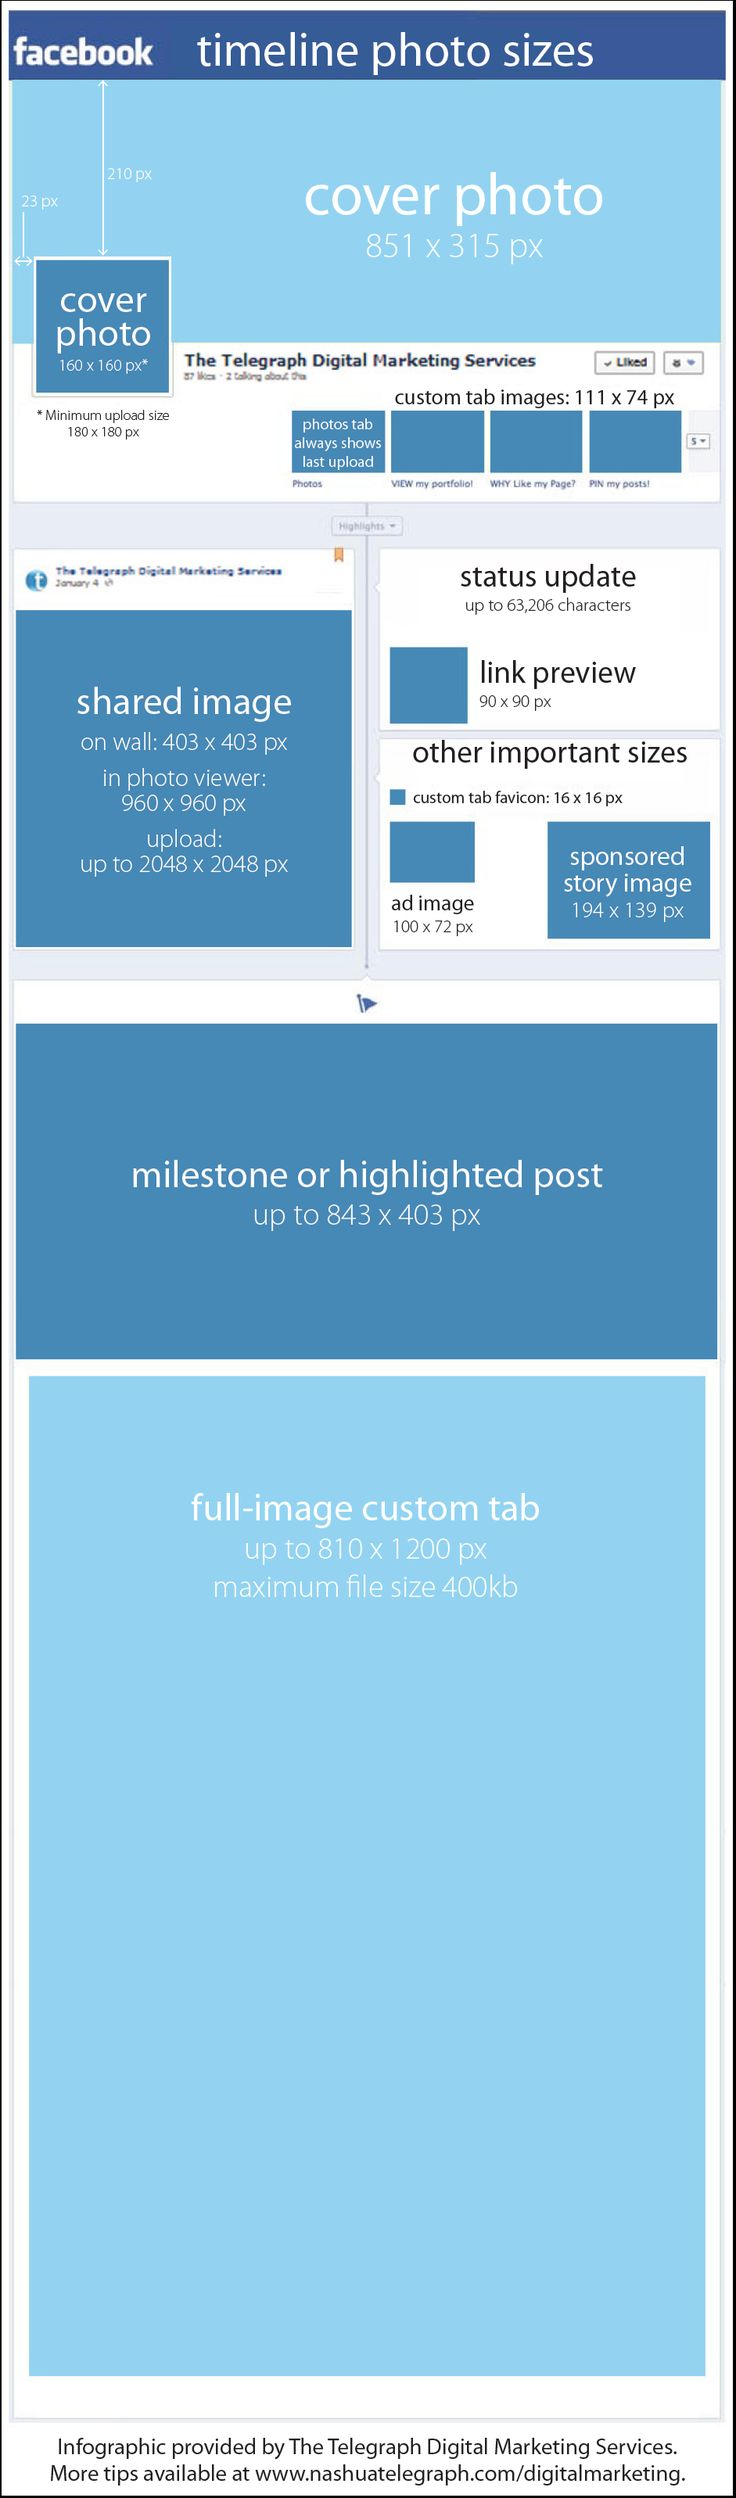 Facebook photo size and page design. A Fantastic Cheat Sheet covering everything from profile photos to custom button images. #socialmedia #fb